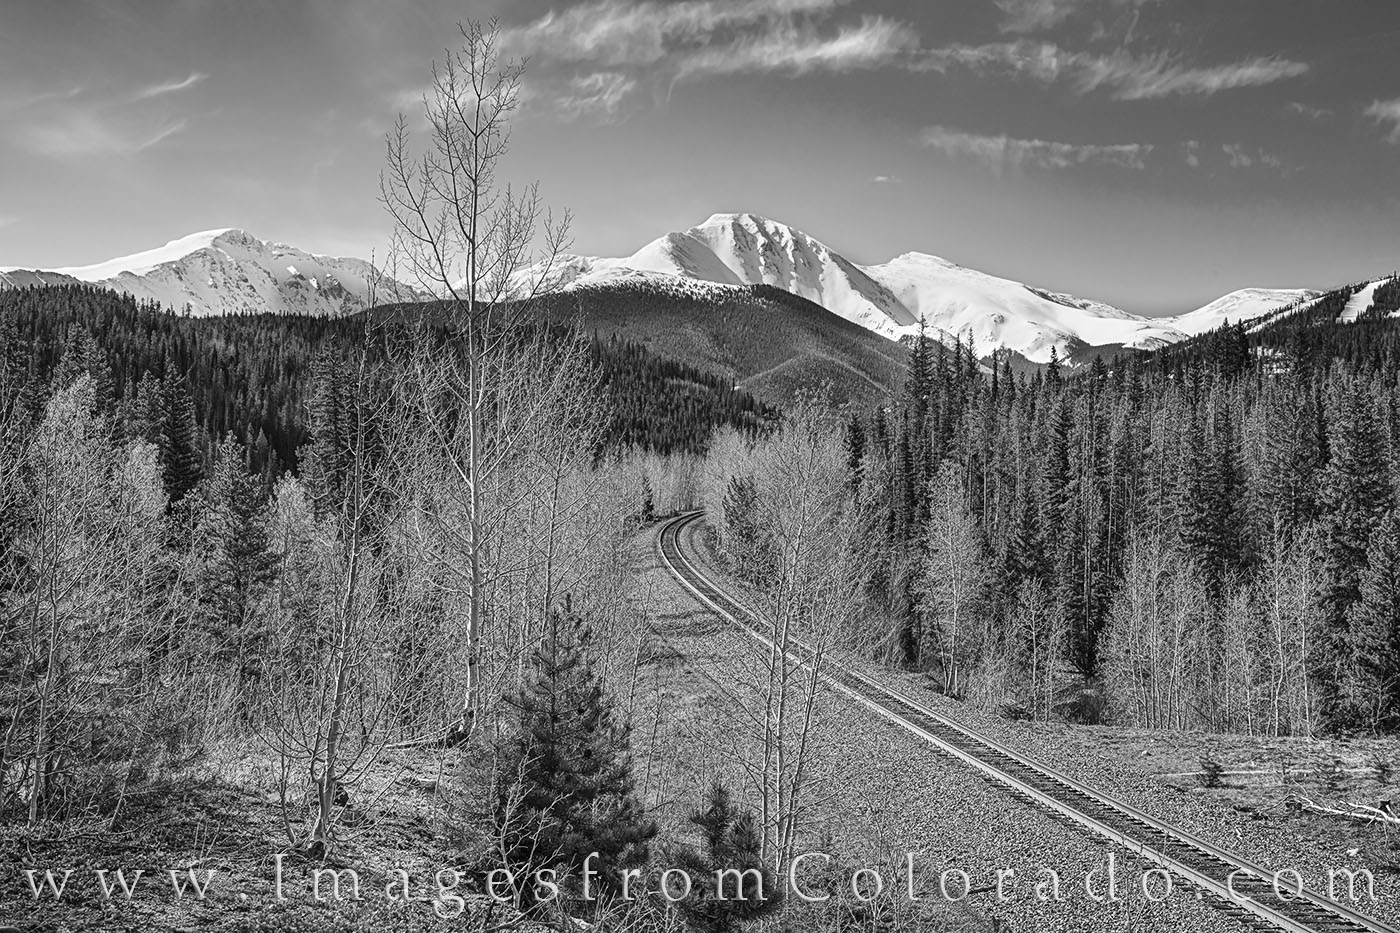 winter park, grand county, continental divide, parry peak, james peak, bear claw, spring, may snow, photo